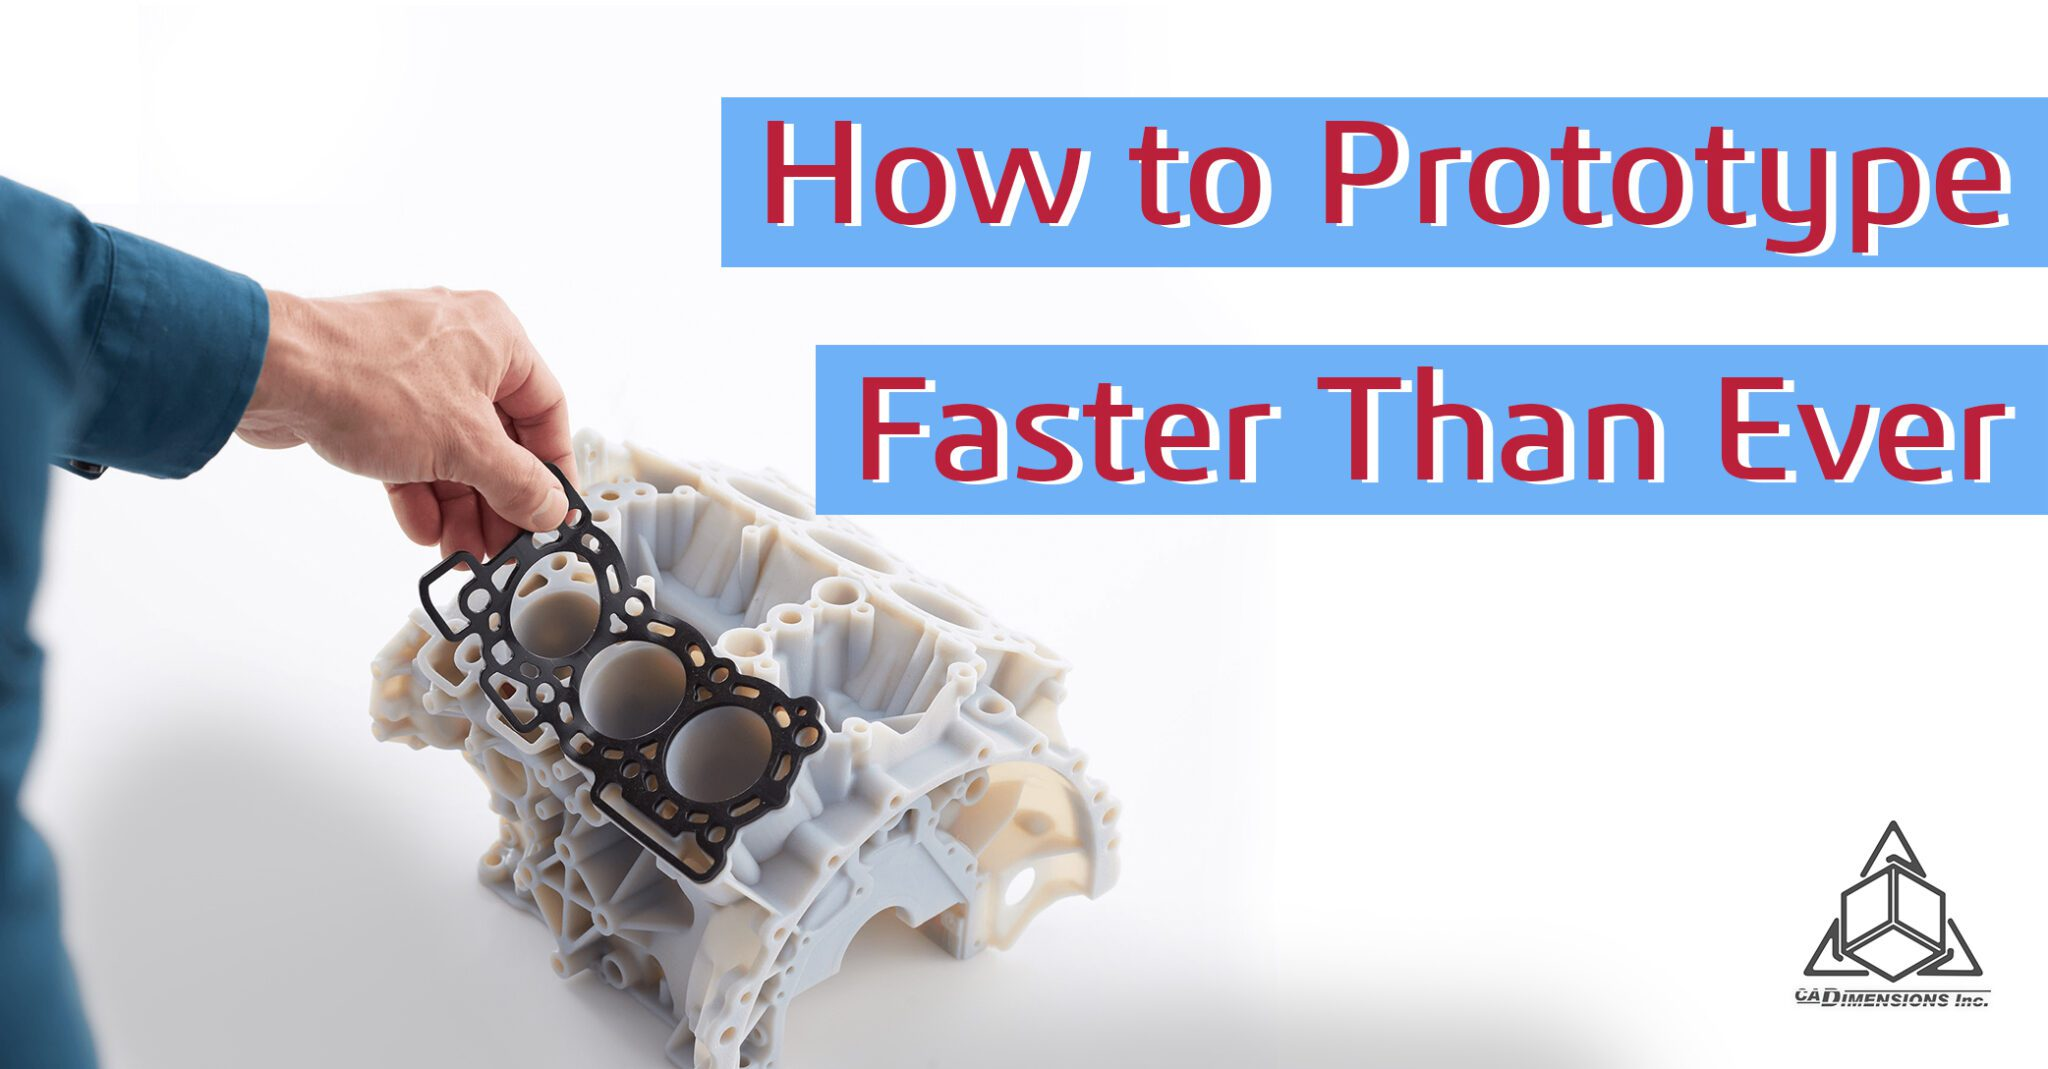 Iterate and Prototype Faster Than Ever with 3D Printing